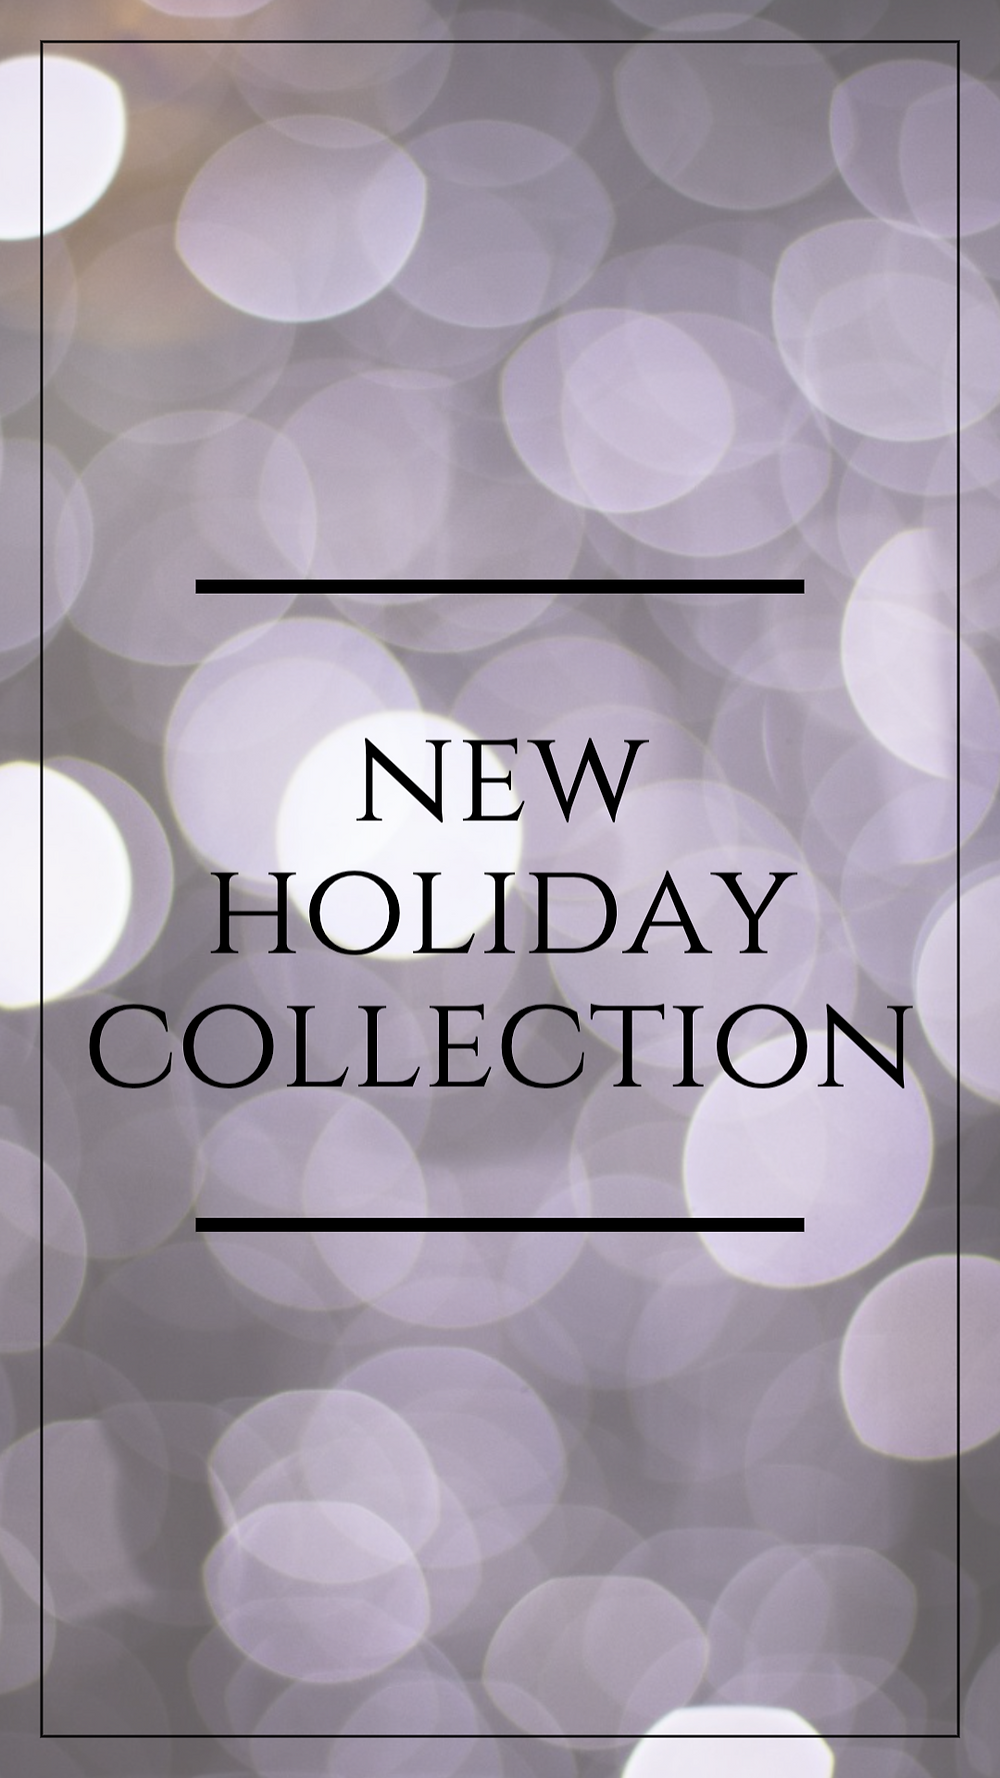 New holiday collection social media story template